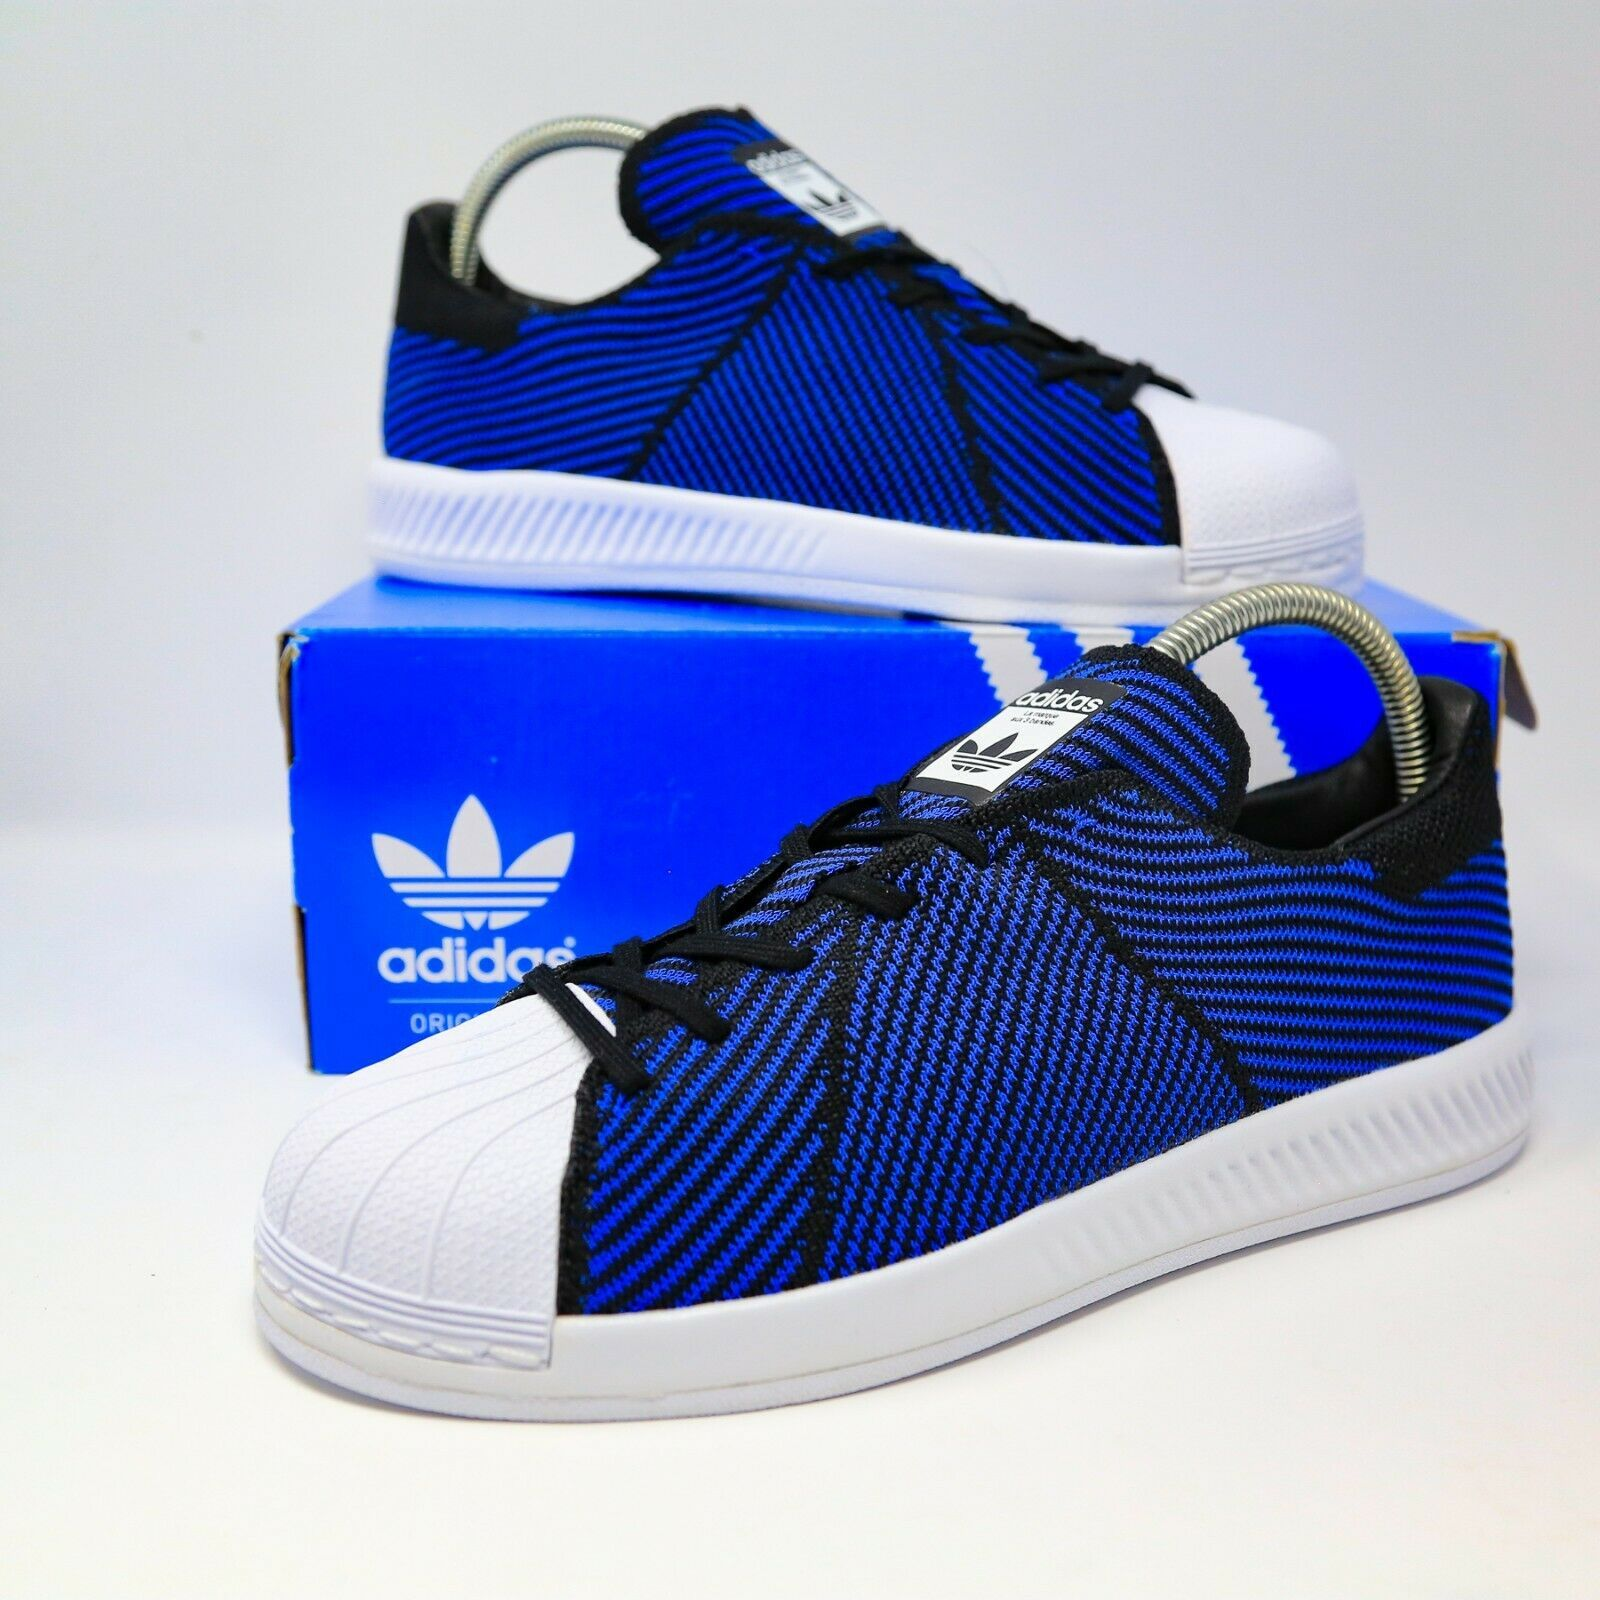 Primary image for Adidas Superstar Bounce Pk Primeknit Sz 7 Azul Negro Blanco S82242 Eu 40 UK 6.5